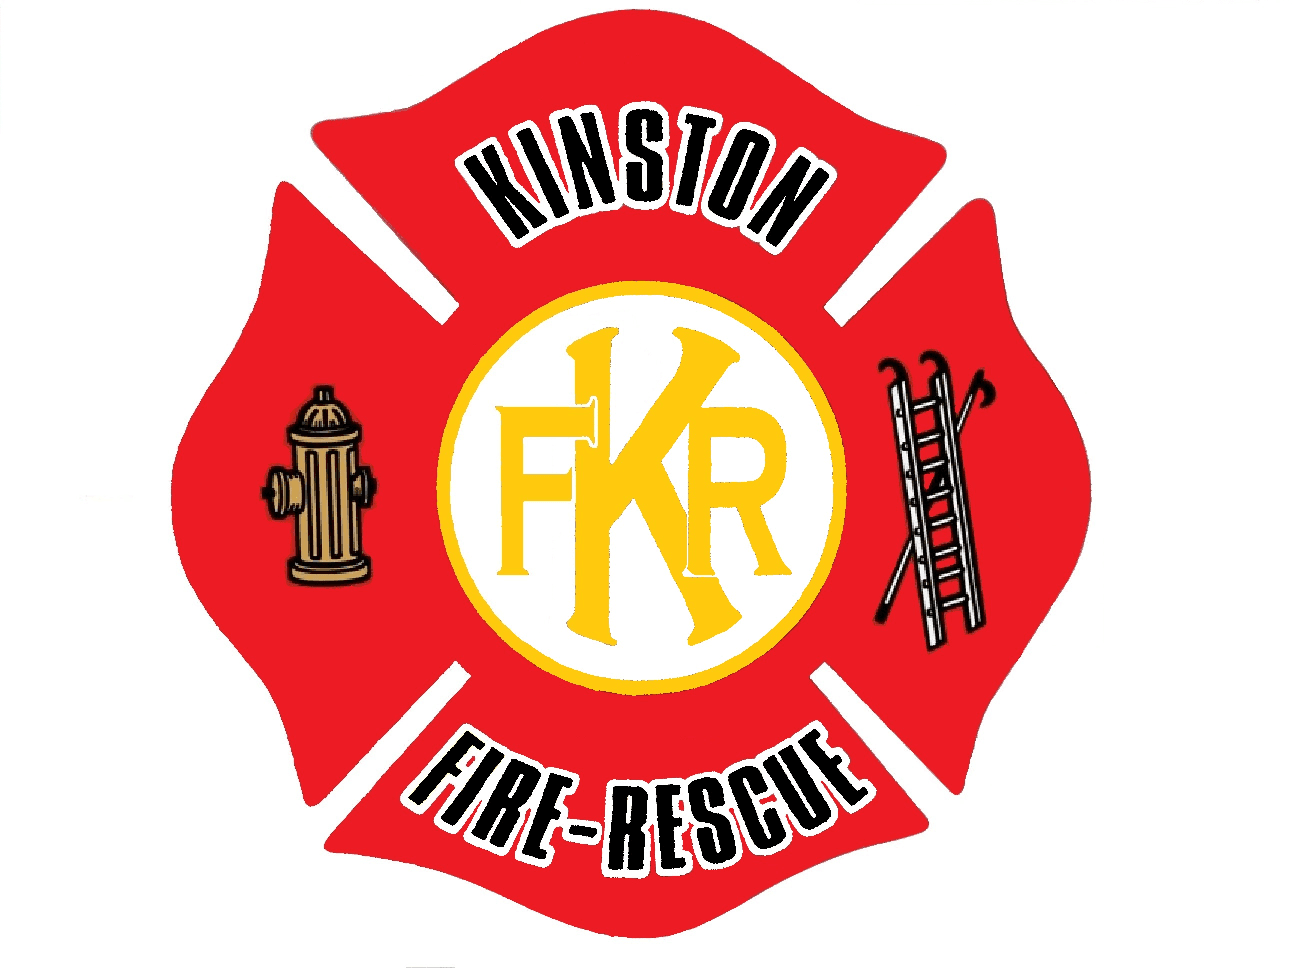 Kinston Department of Fire and Rescue Maltese Cross